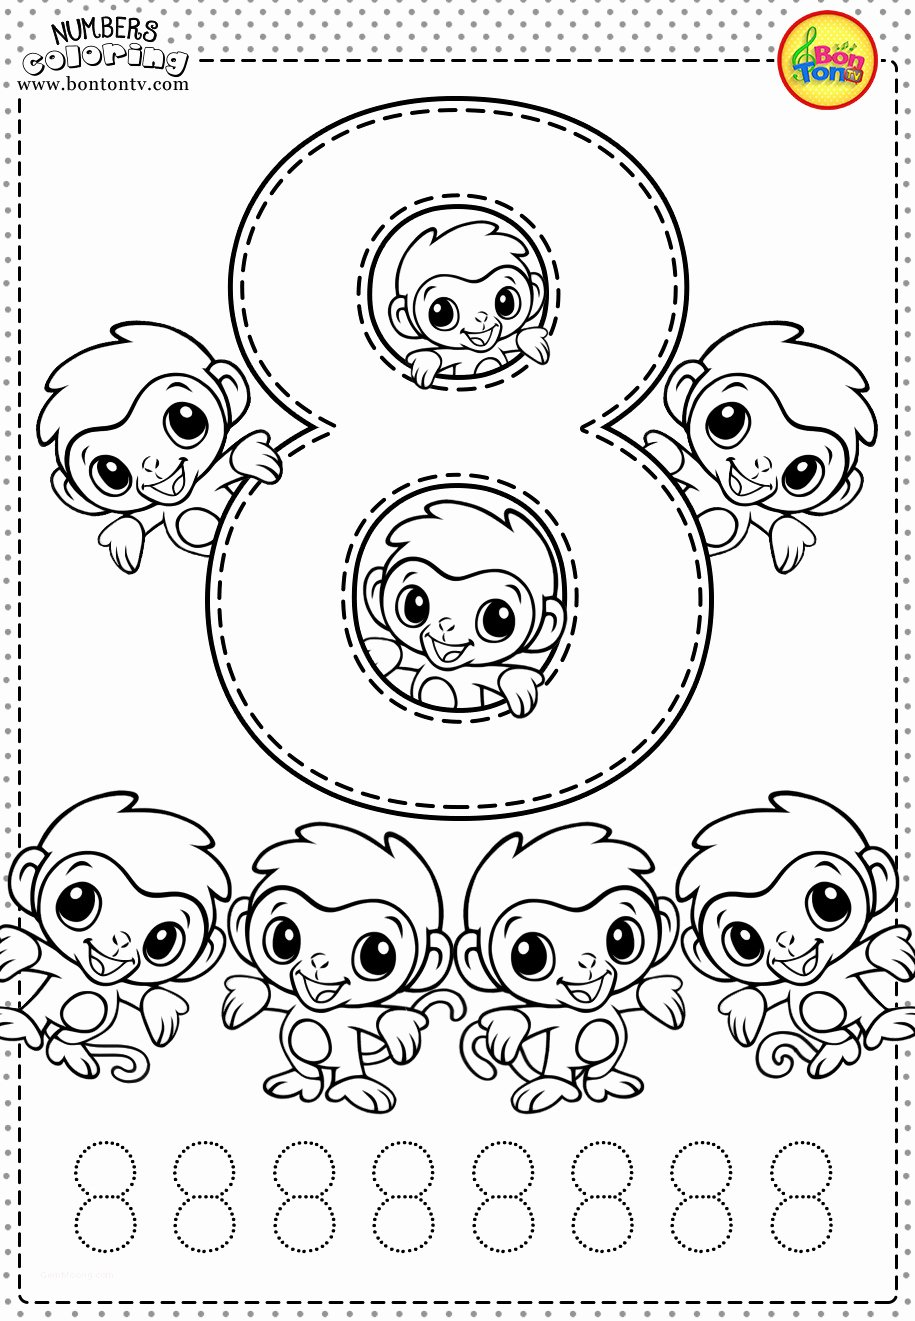 Number 8 Worksheets for Preschoolers Inspirational Coloring Pages Childrens Printable Coloring Pages Awesome